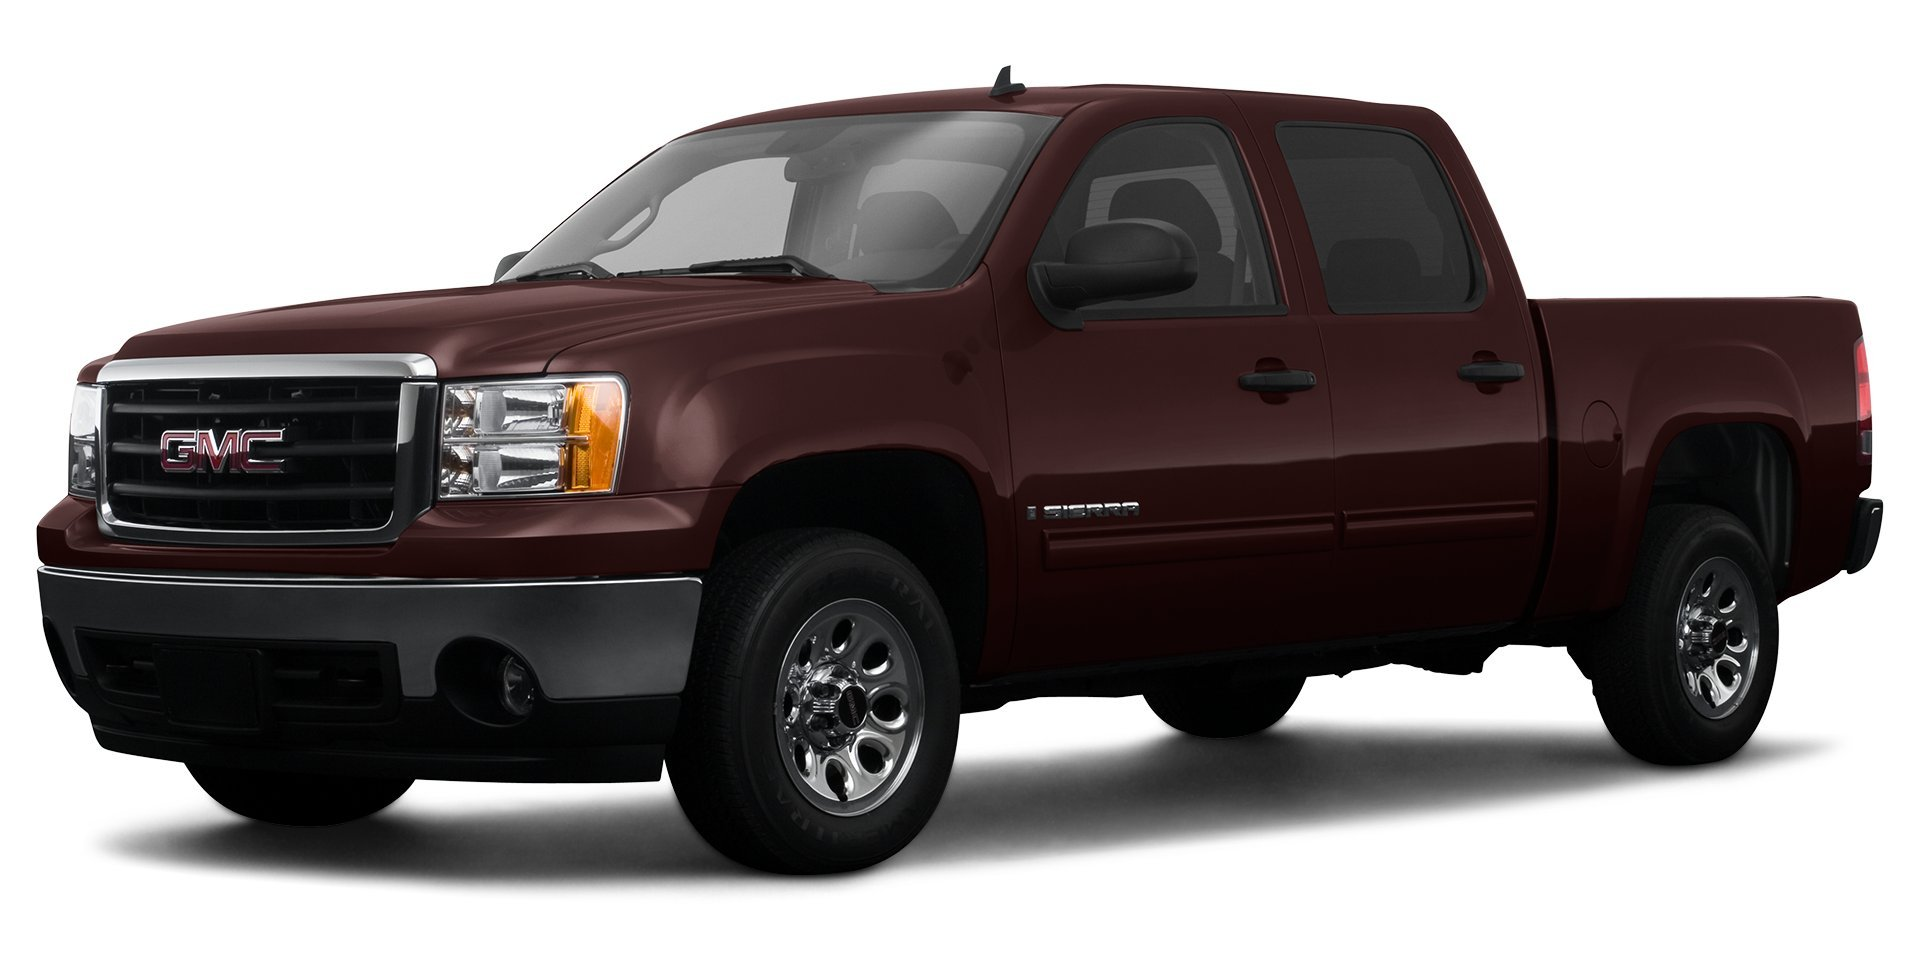 Toyota Tacoma Owners Manual: Items to initialize